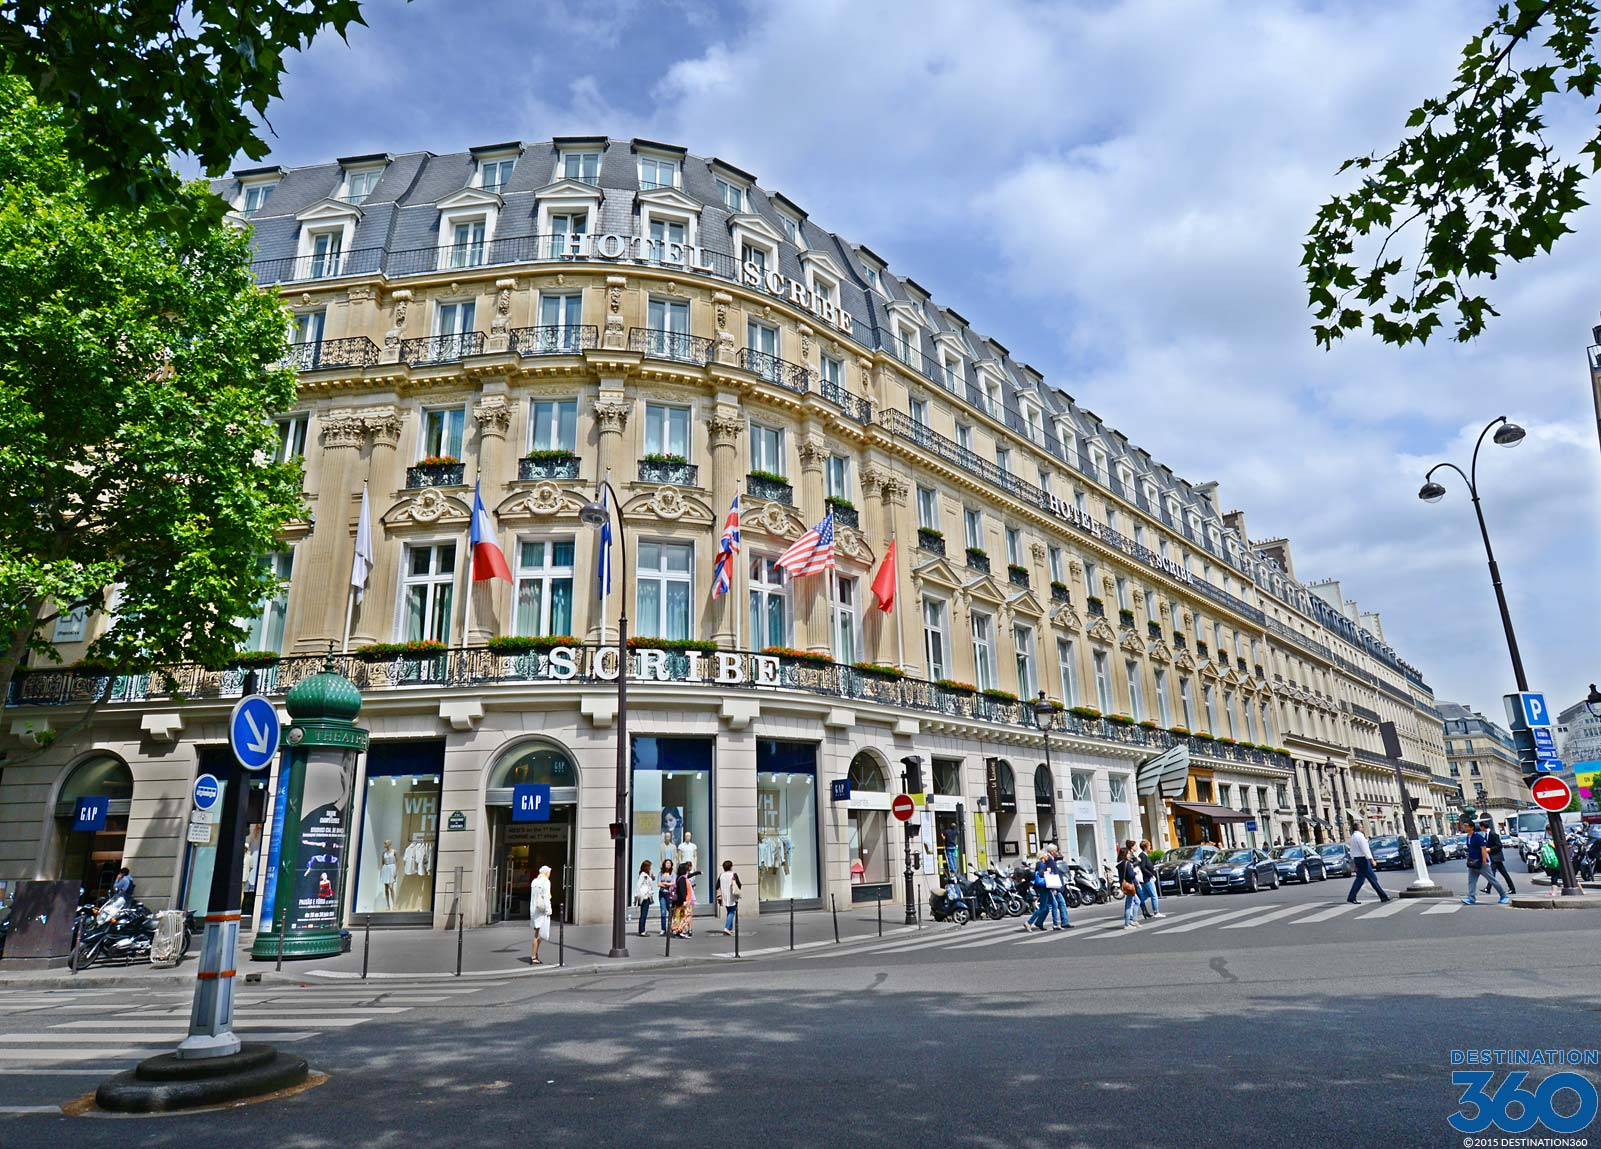 Hotel de la tremoille la trmoille five star paris hotel for Top design hotels in paris